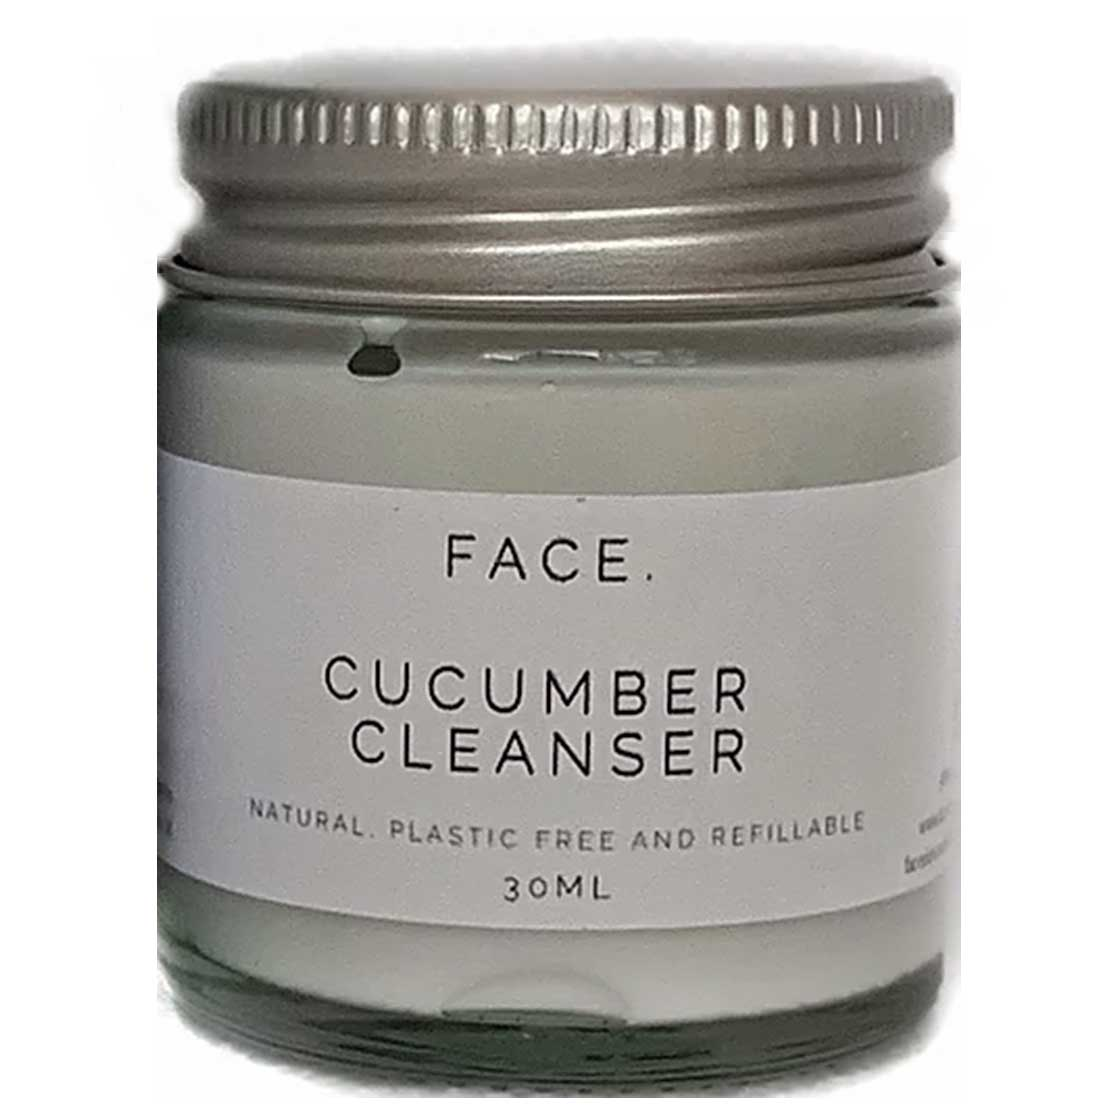 Cucumber Cleanser (30ml) by FACE.